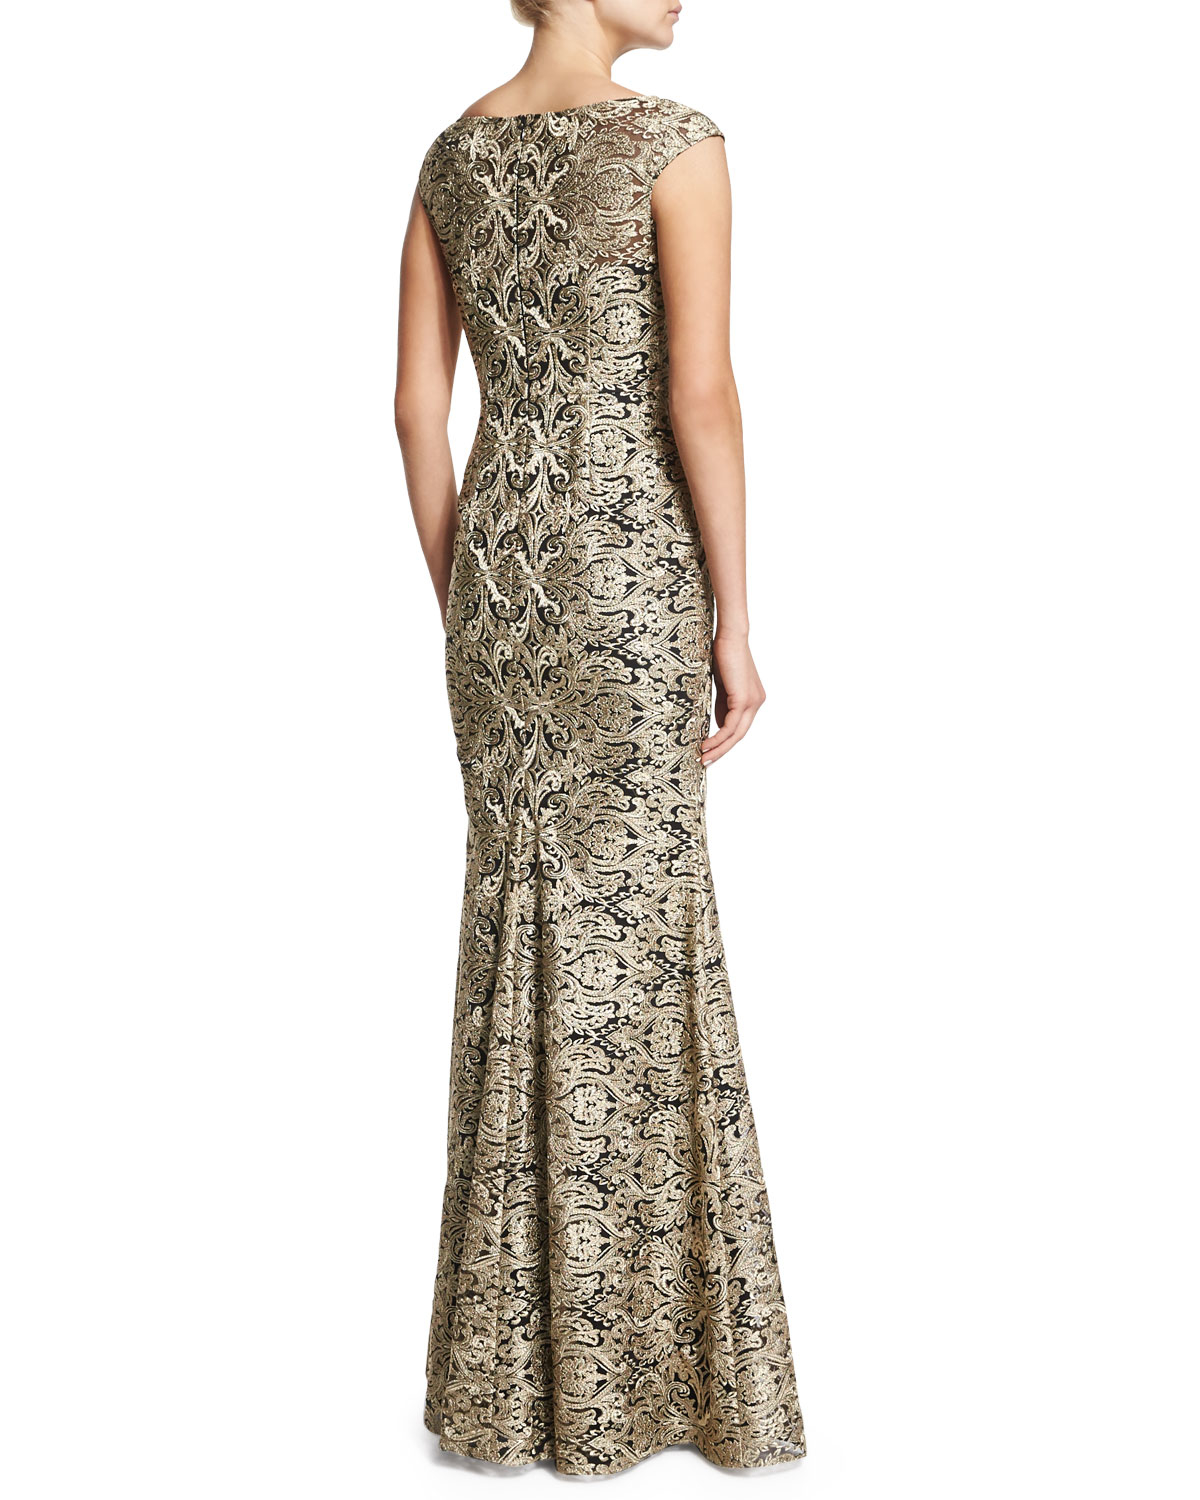 David Meister Metallic Lace Gown